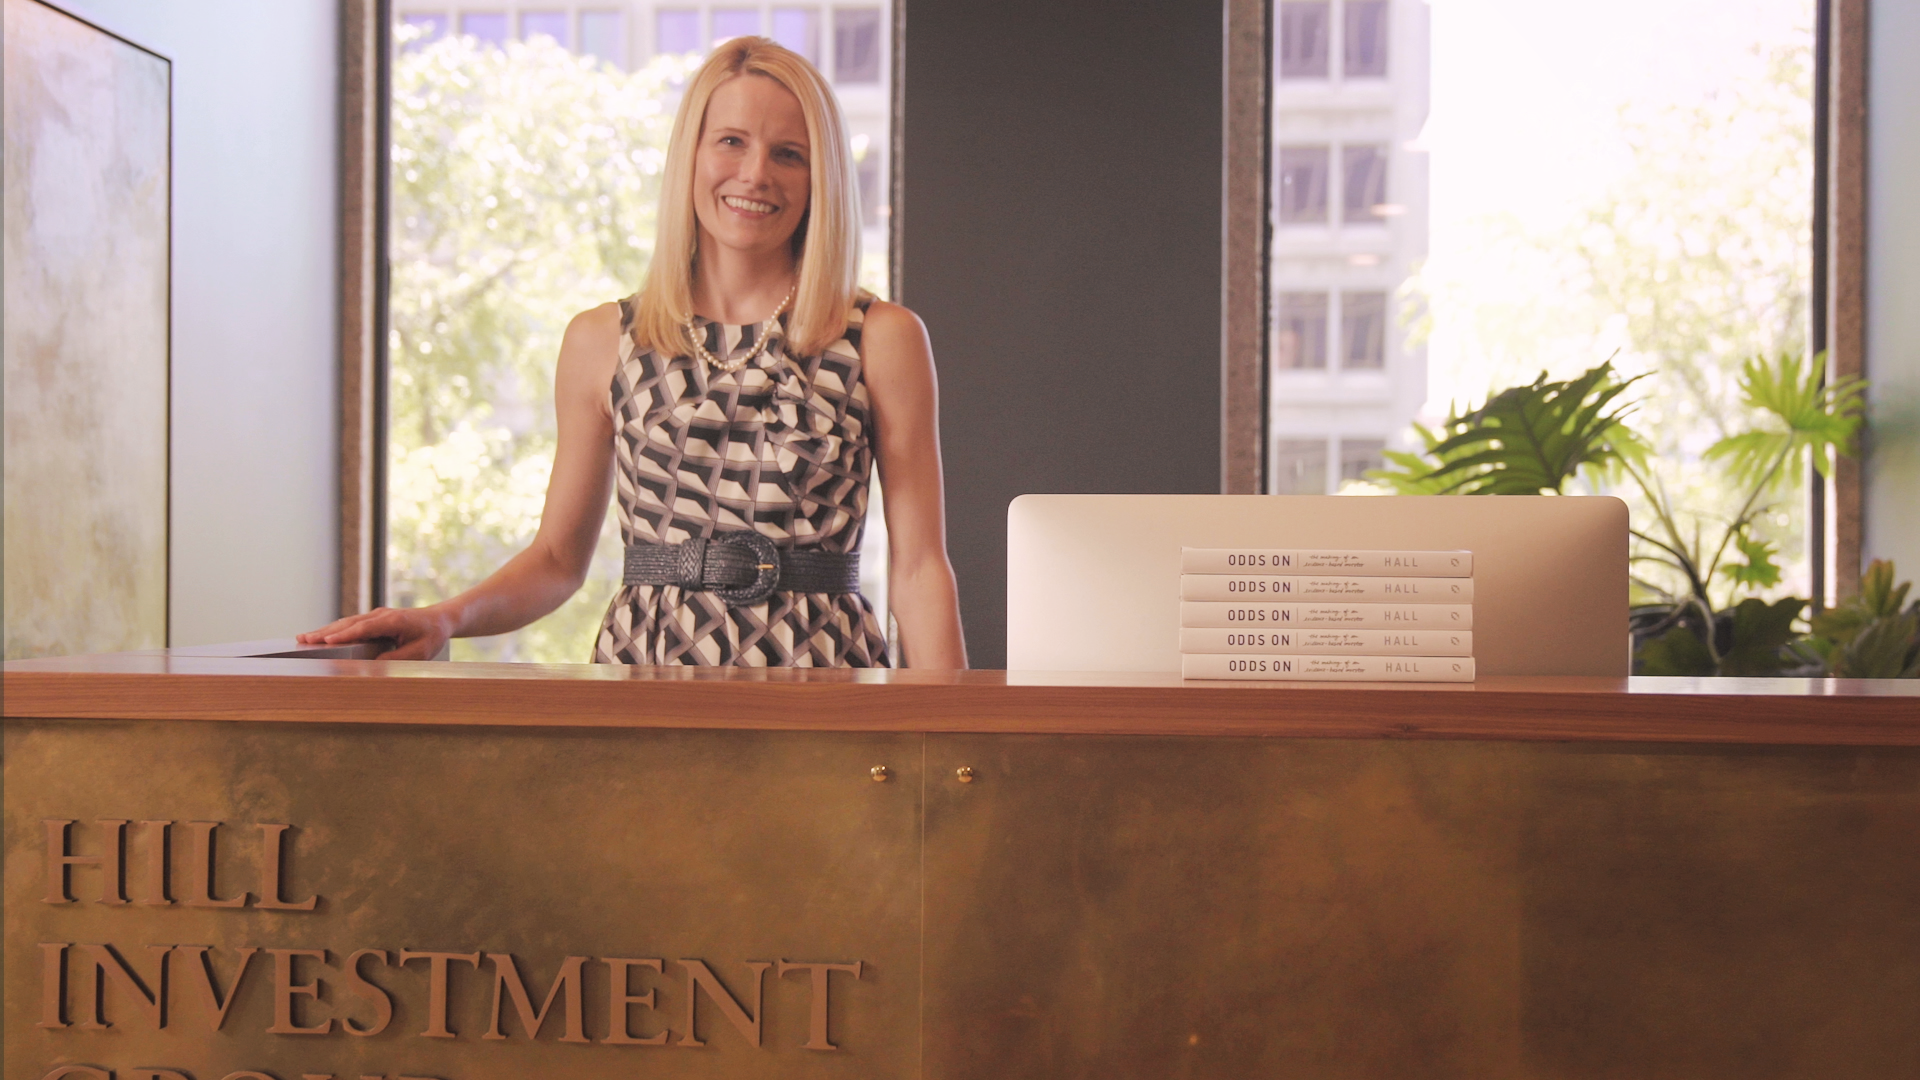 Katie at Hill Investment Group